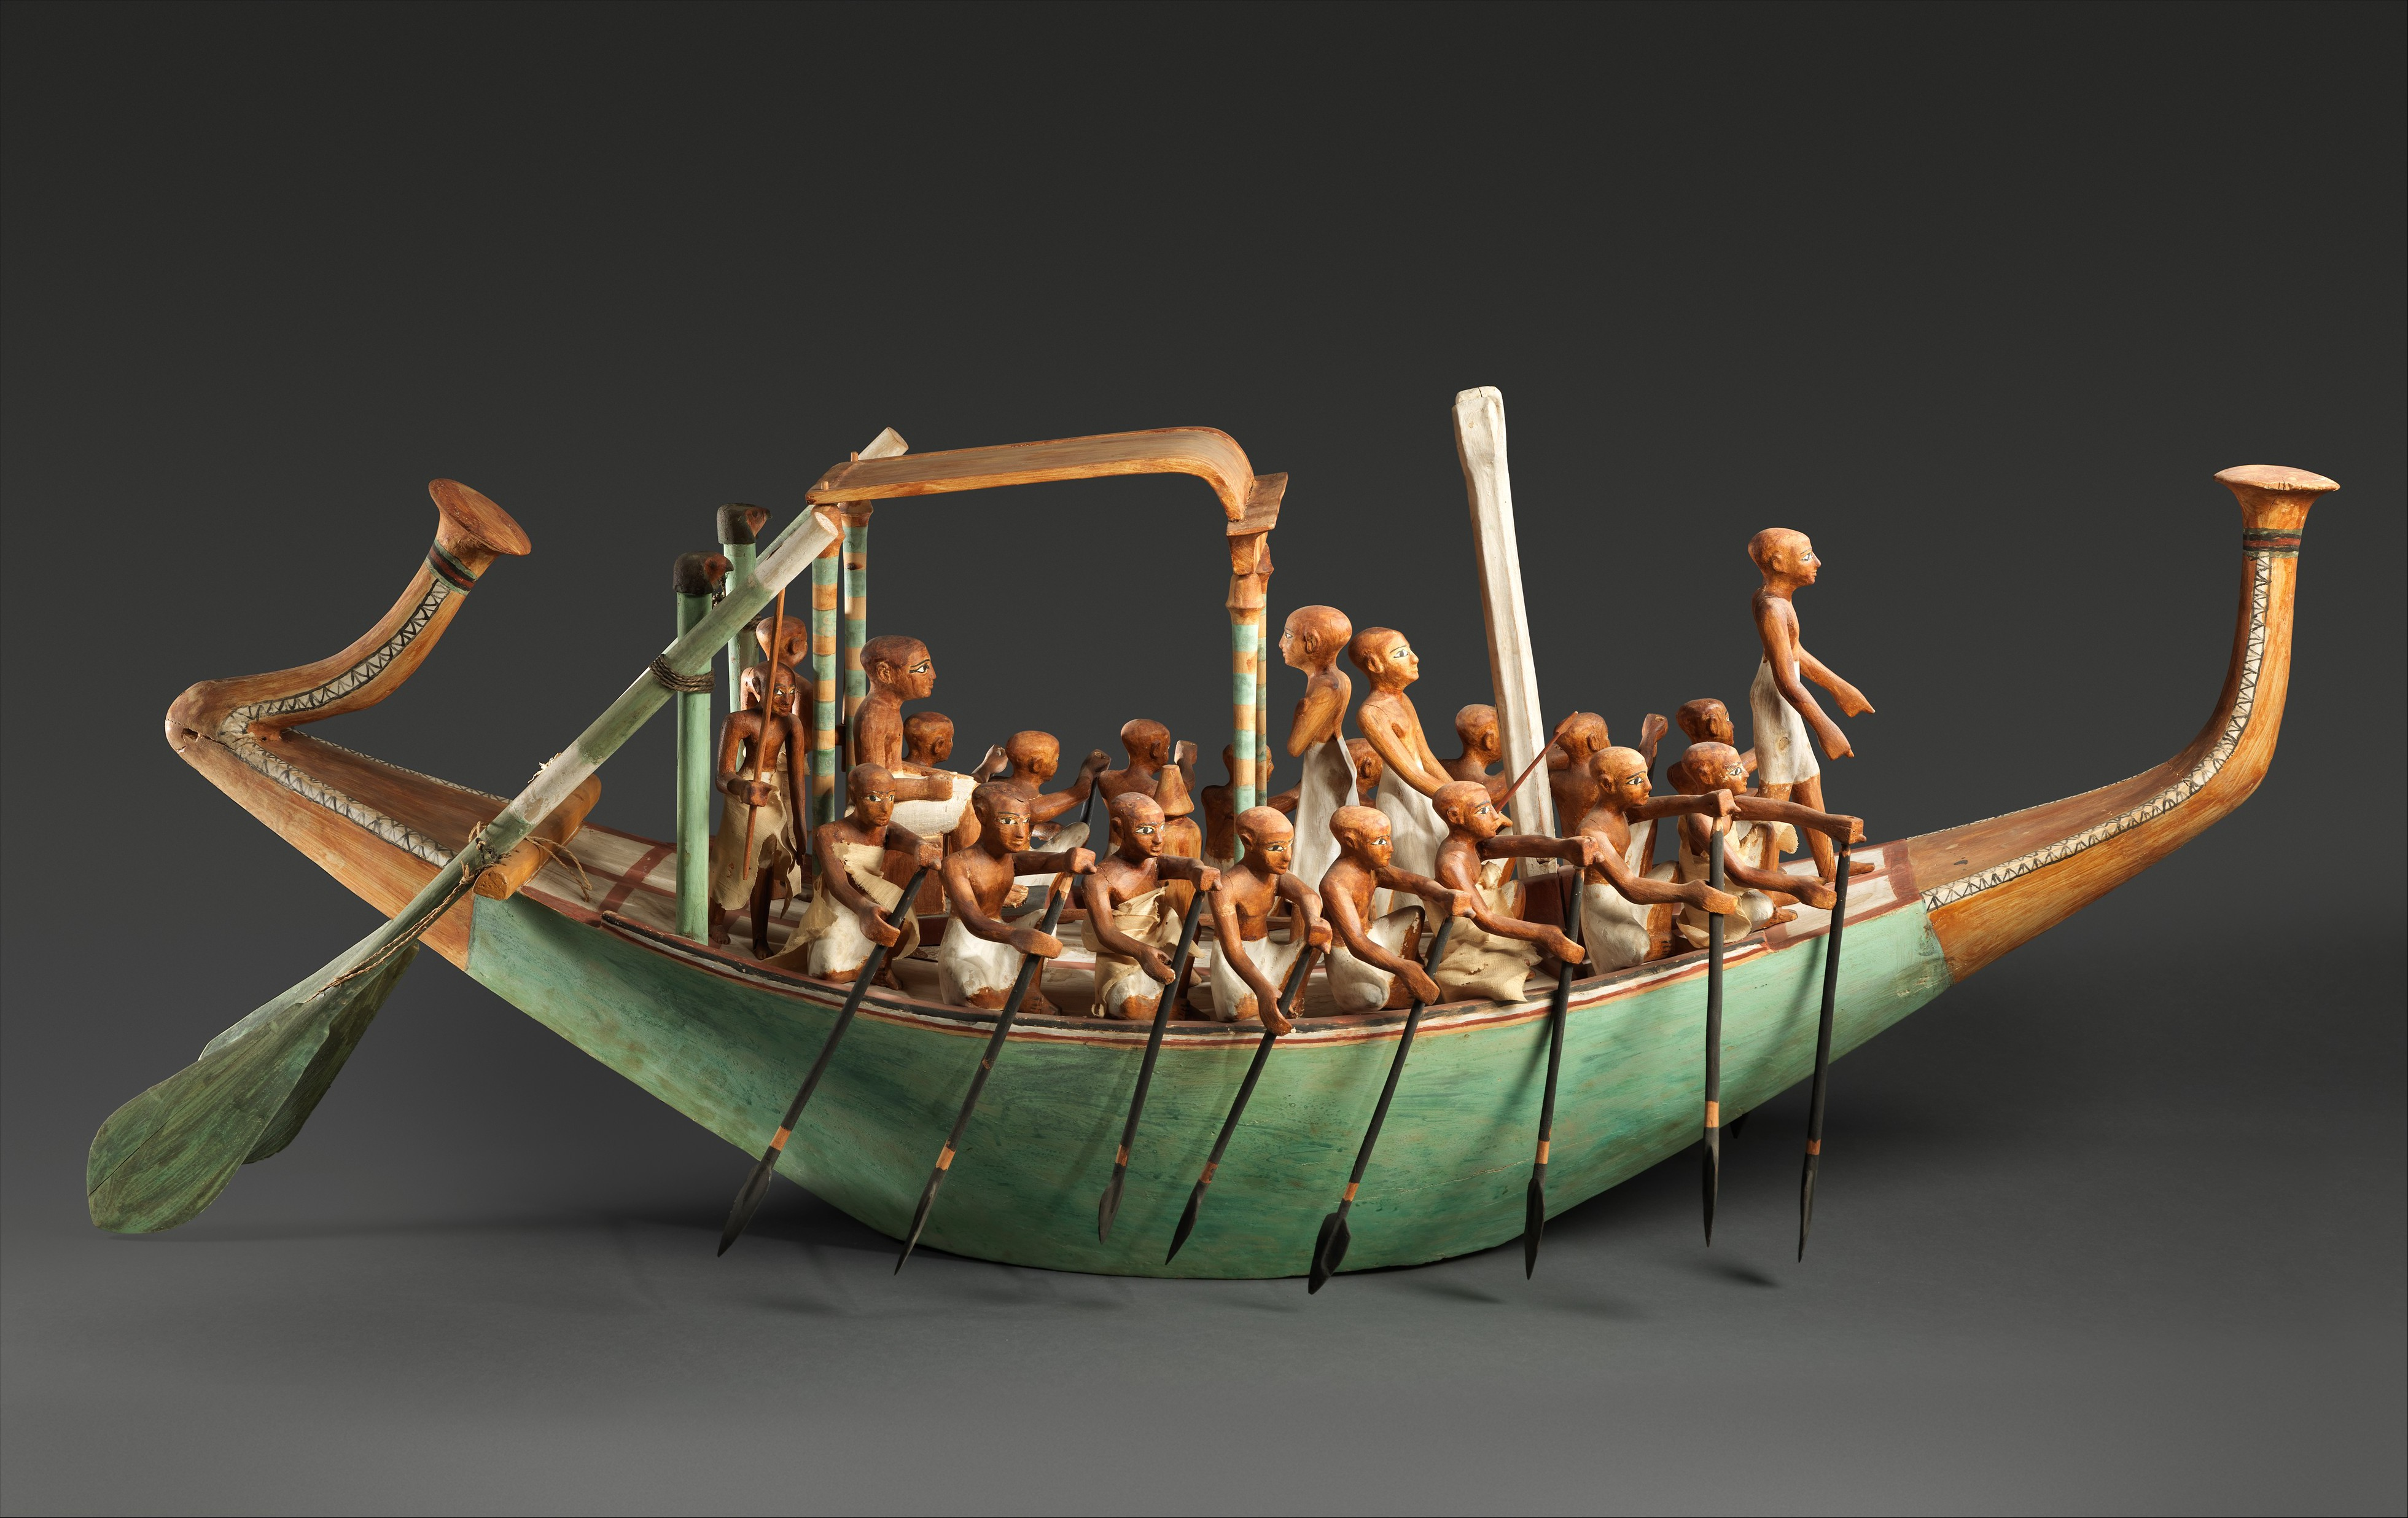 Model Paddling Boat, Wood, paint, plaster, linen twine, linen fabric